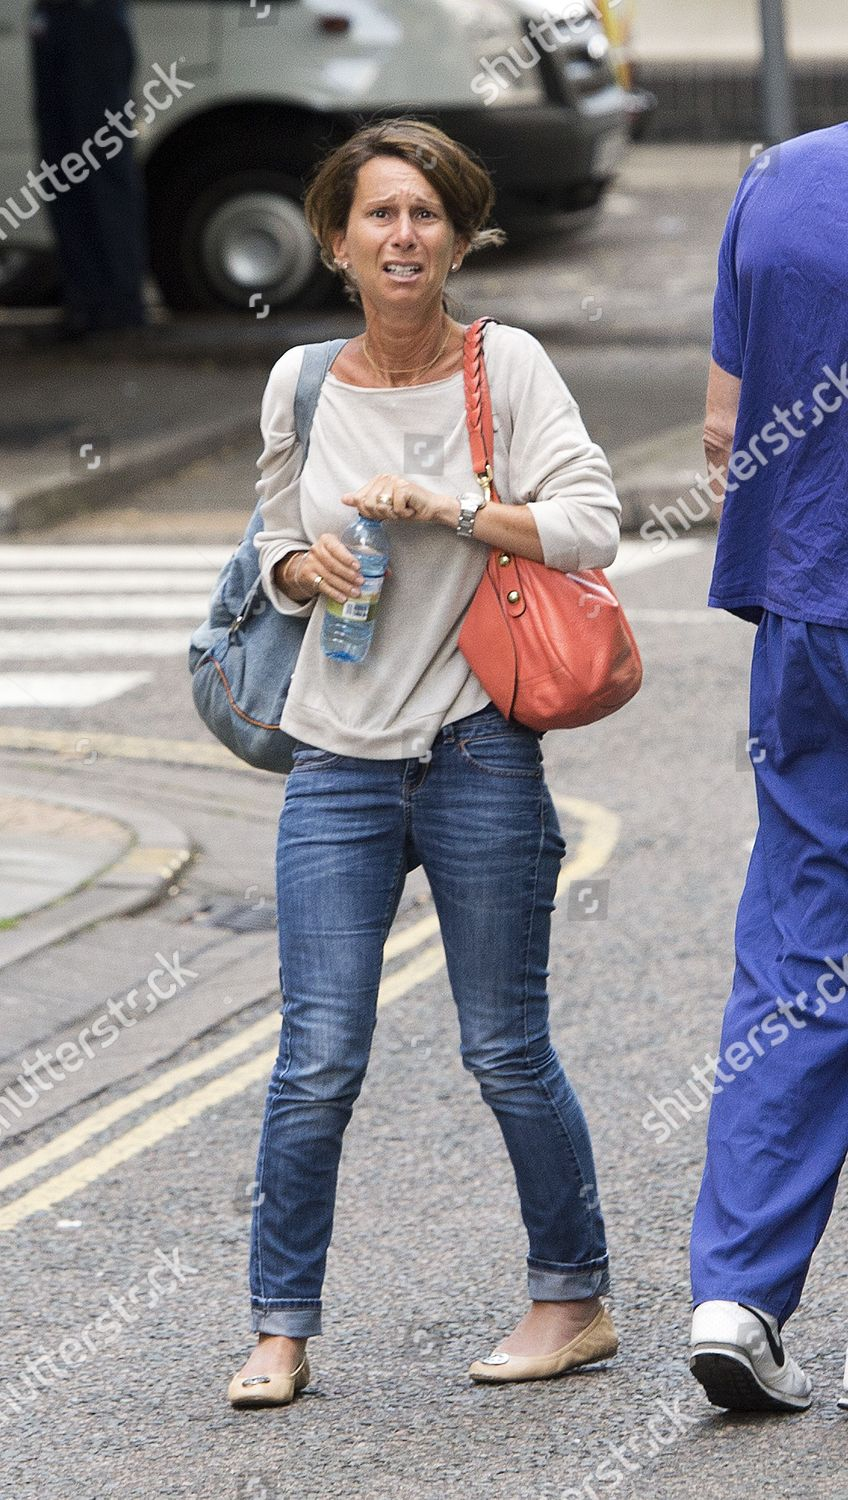 emotional Nicky Gee mother Katie Gee outside Editorial Stock Photo